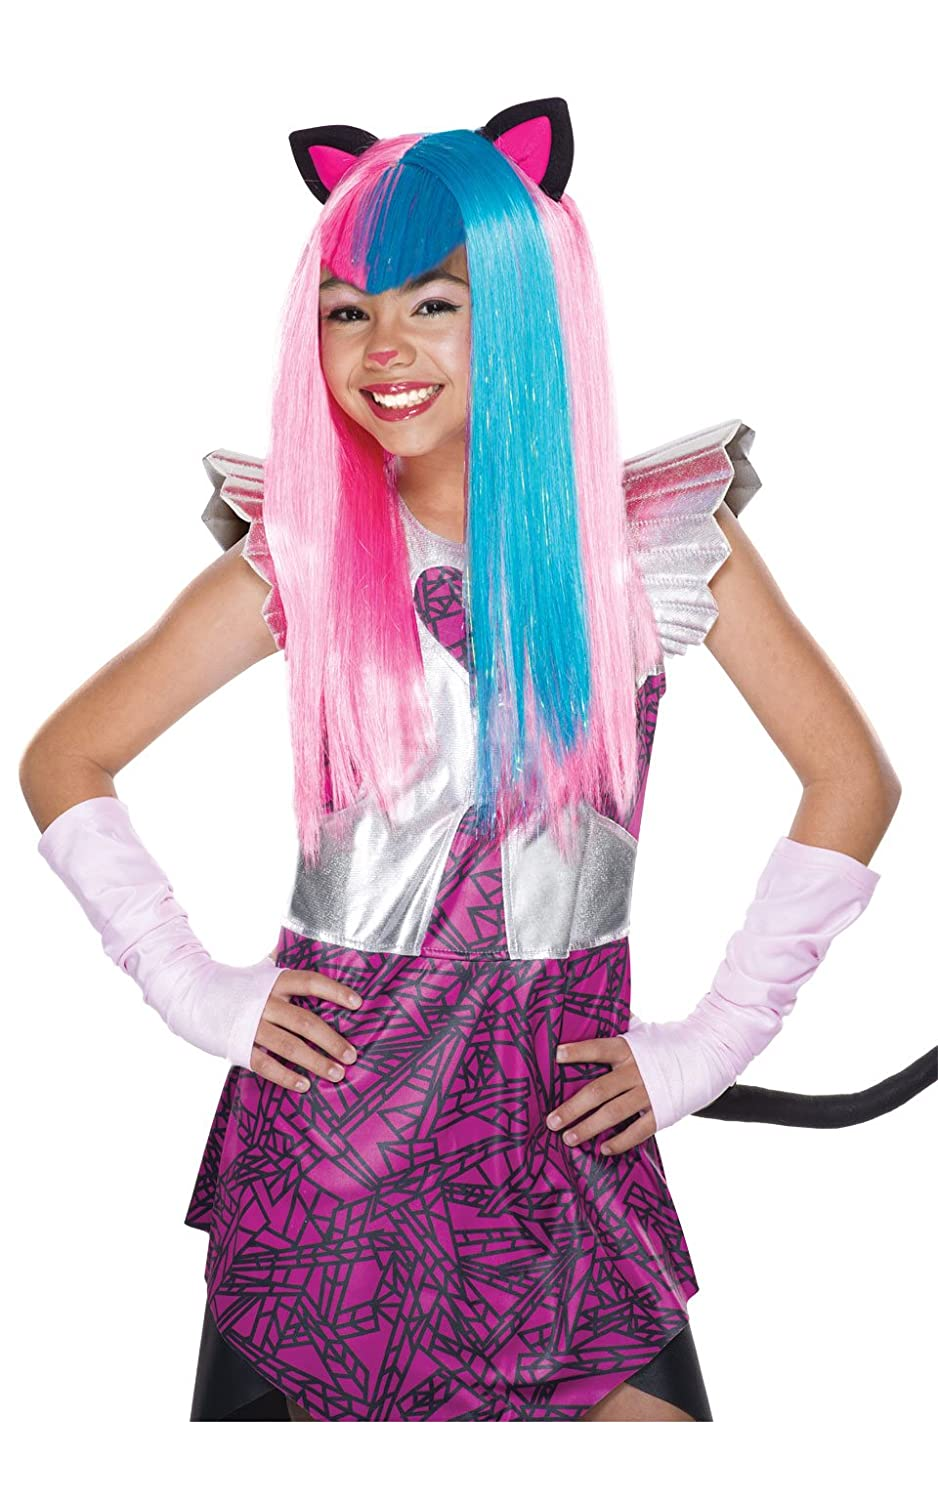 amazoncom rubies costume monster high boo york catty noir child wig toys games - Halloween Costume Monster